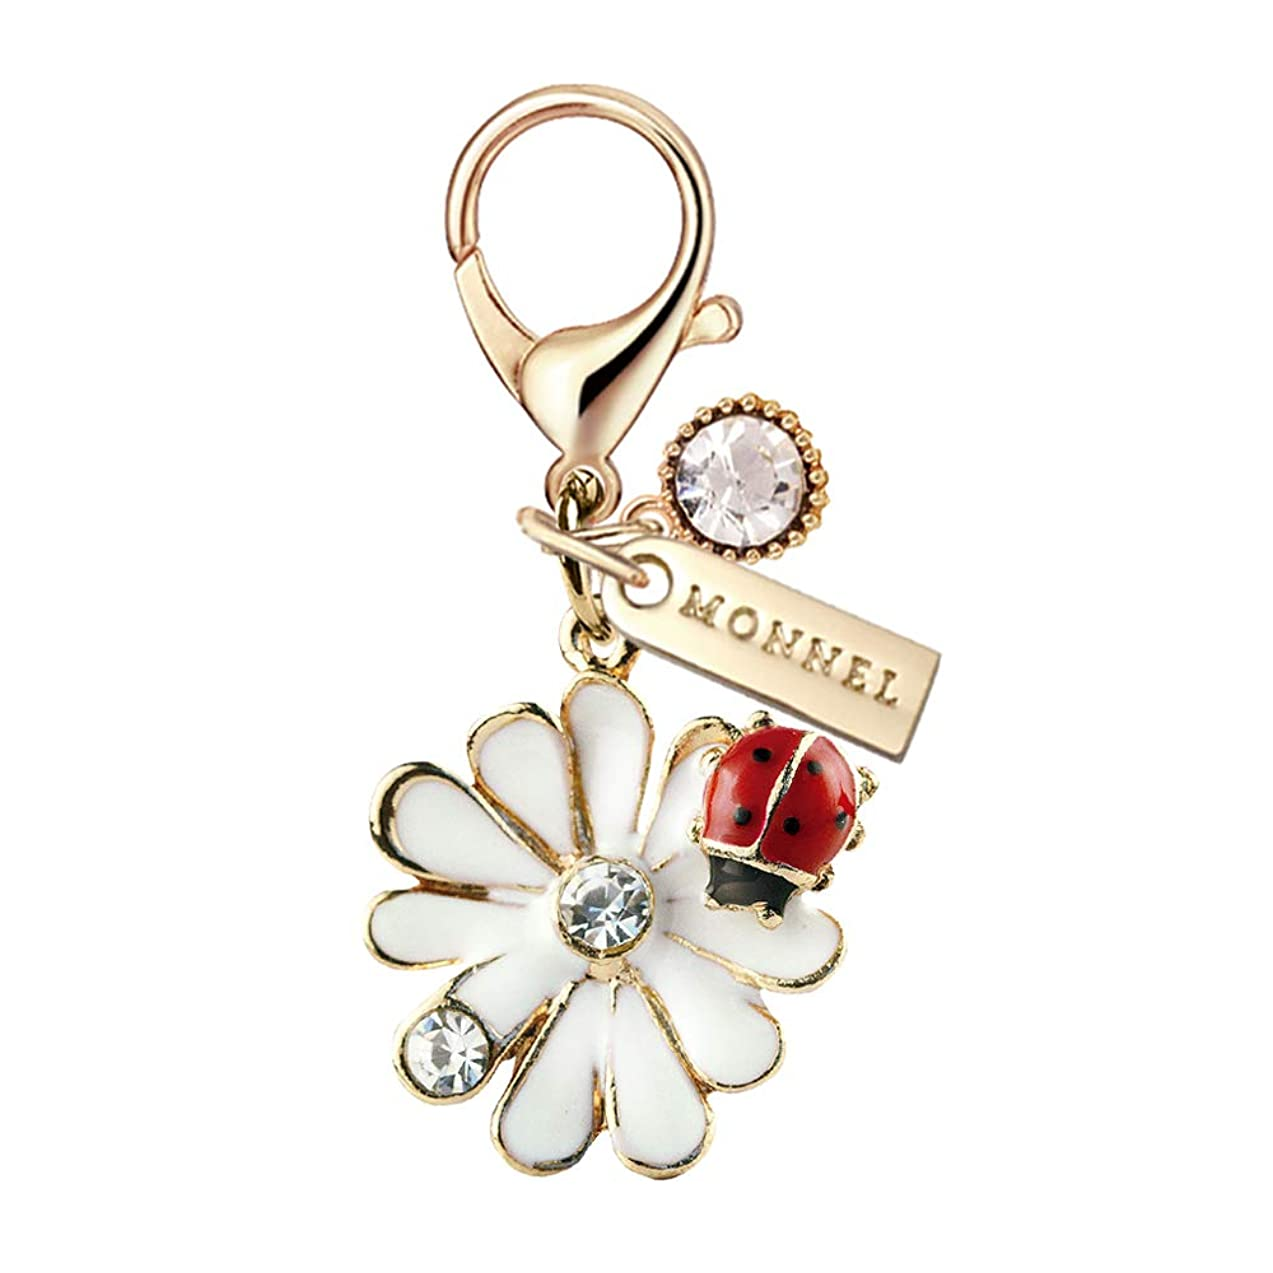 MC100 New Arrival Cute White Lily Flower Ladybug Lobster Clasp Charm Pendant with Pouch Bag (1 Piece)